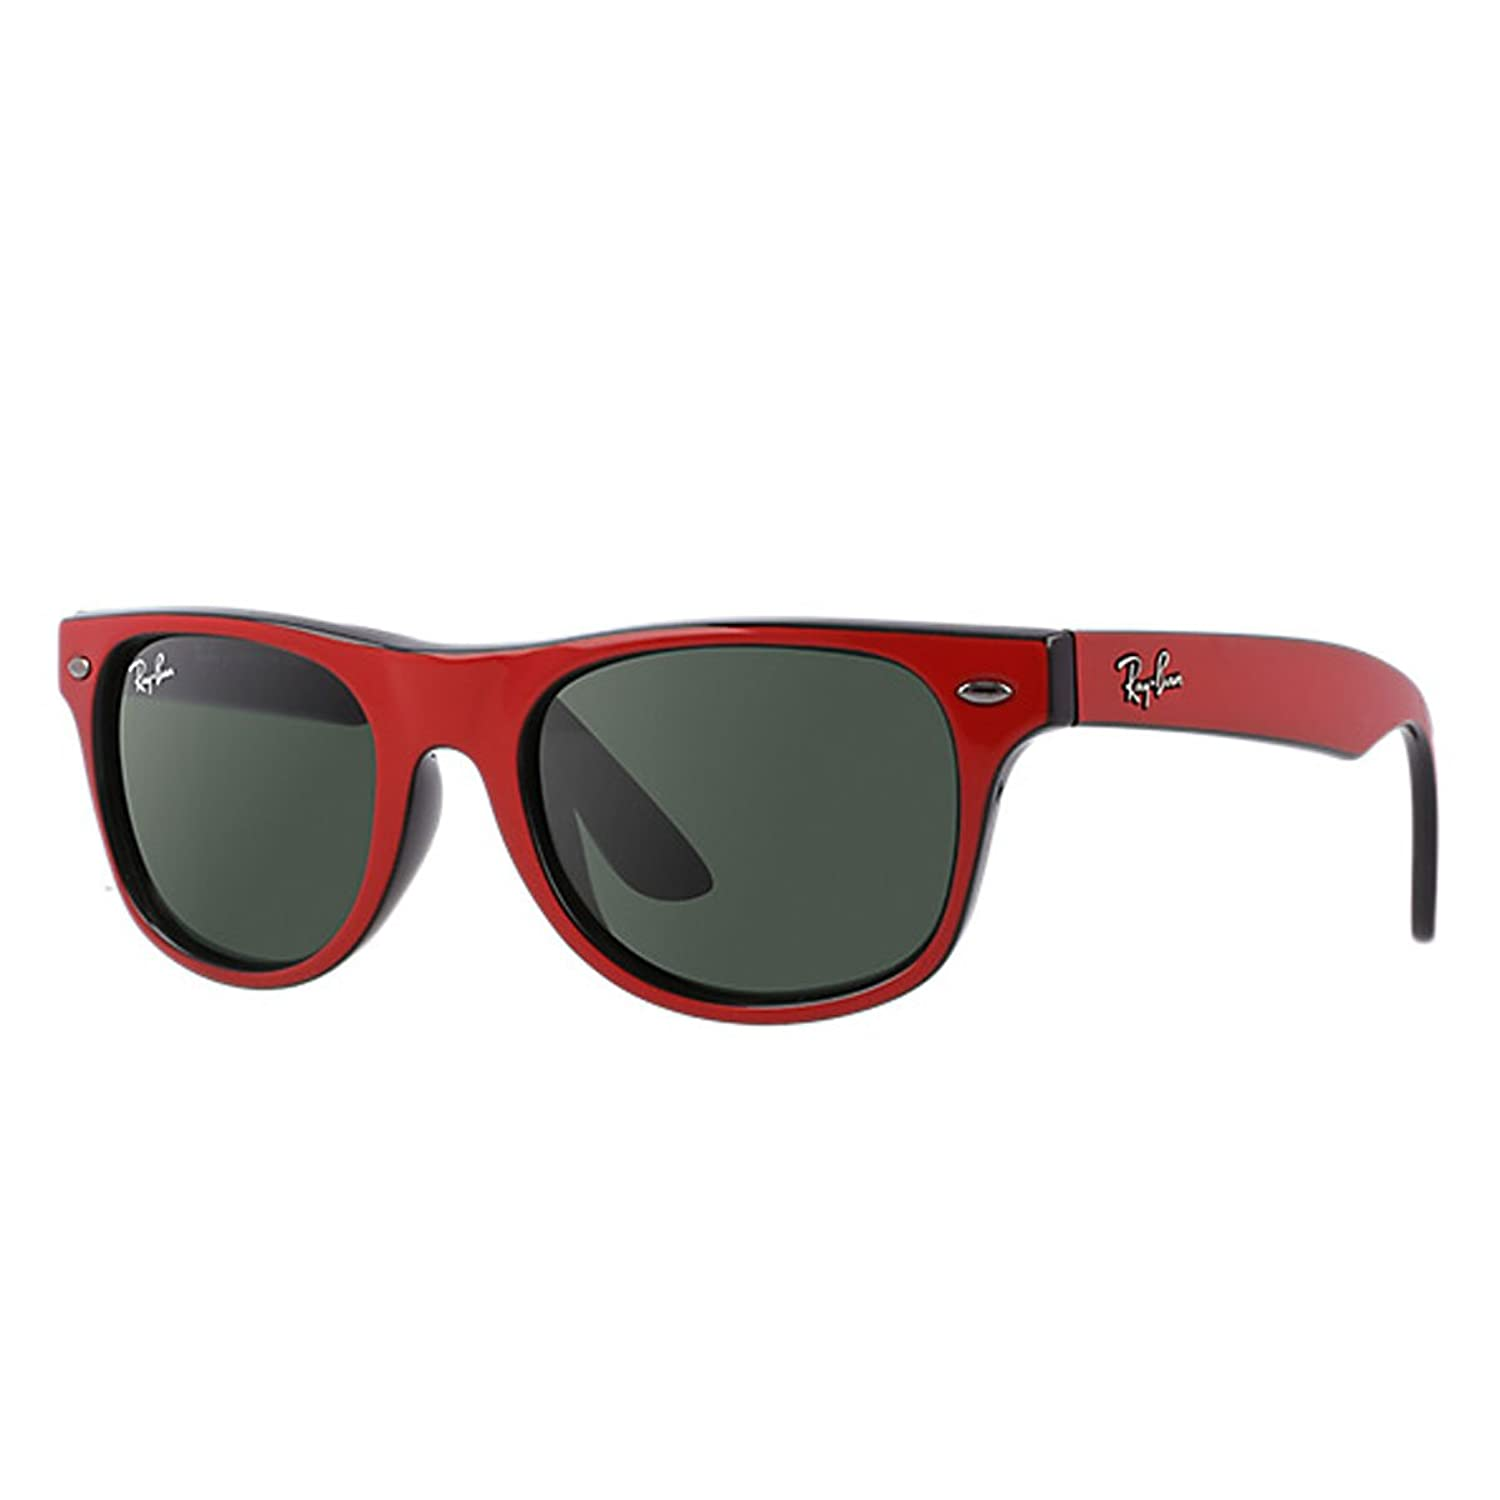 ray ban outlet italia  amazon: ray ban junior junior wayfarer top red on black frame green lenses 44mm non polarized: ray ban: clothing